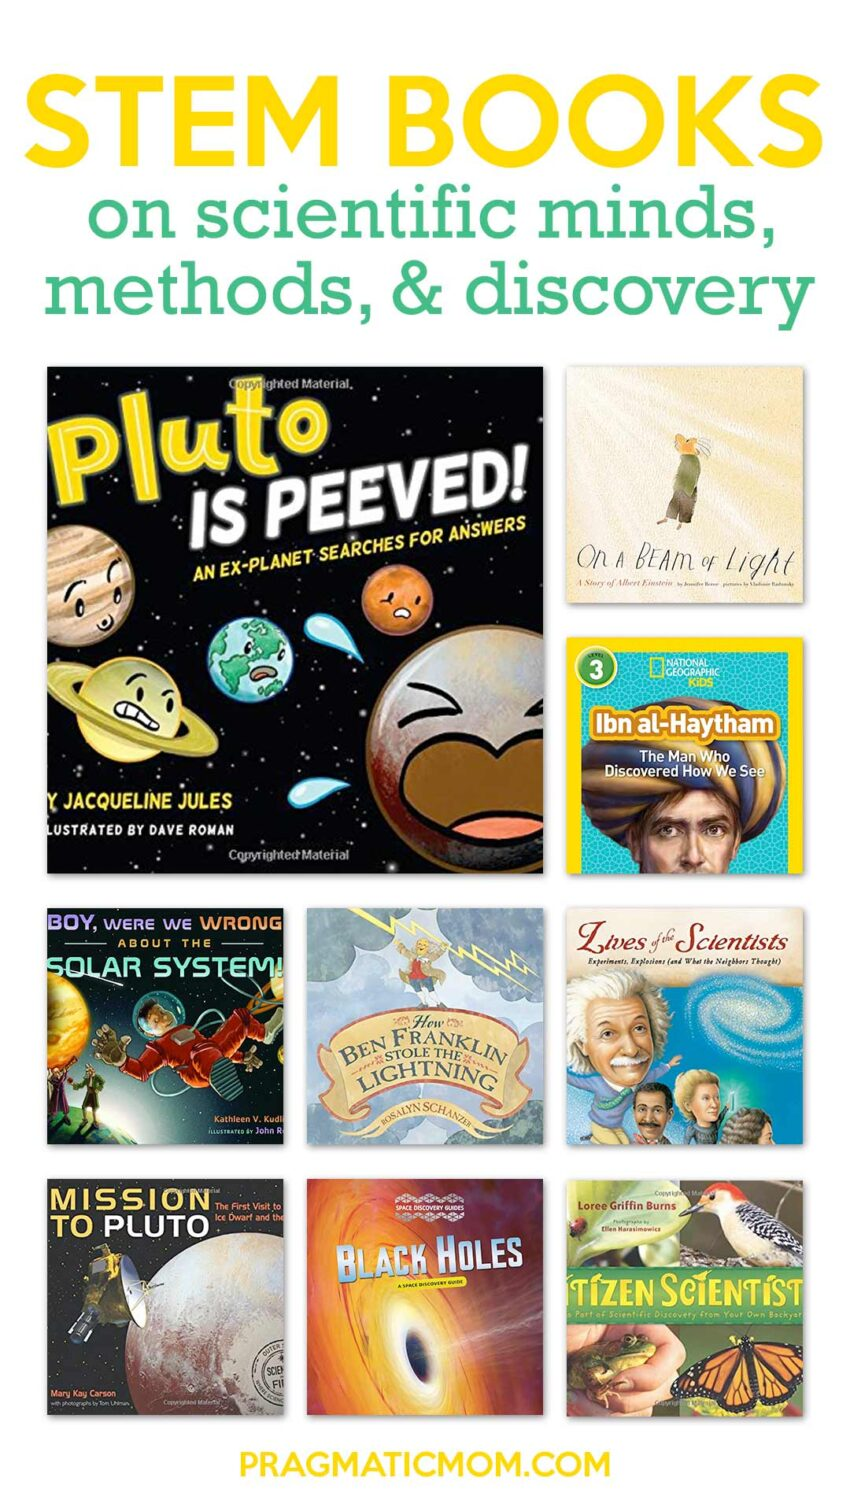 STEM Books on Scientific Minds, Methods, & Discovery